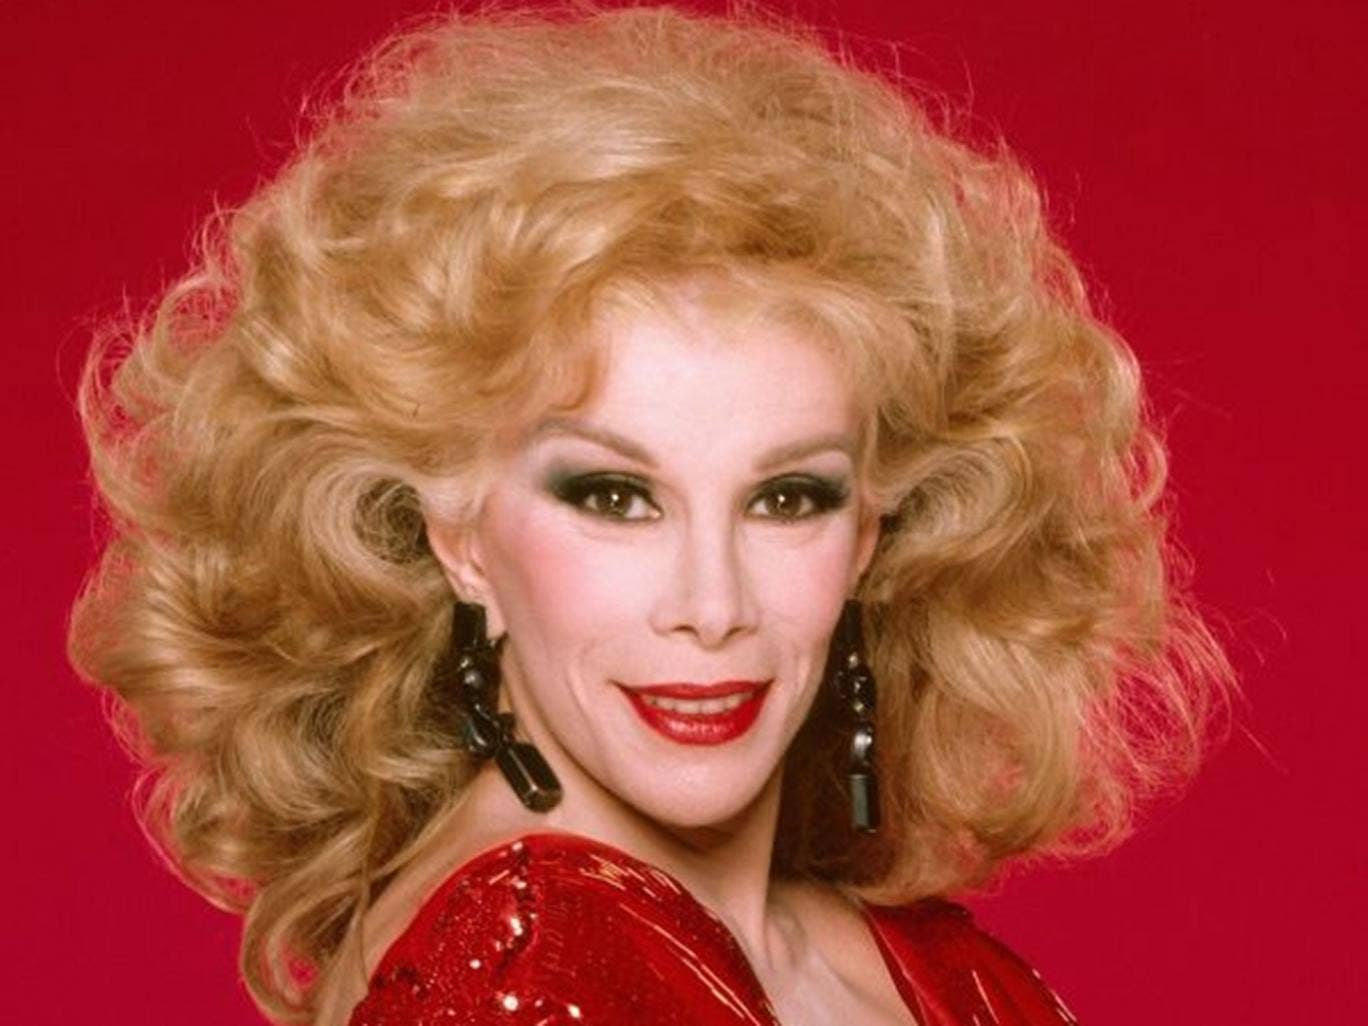 Comedian Joan Rivers poses for a portrait in 1990 in Los Angeles, California.